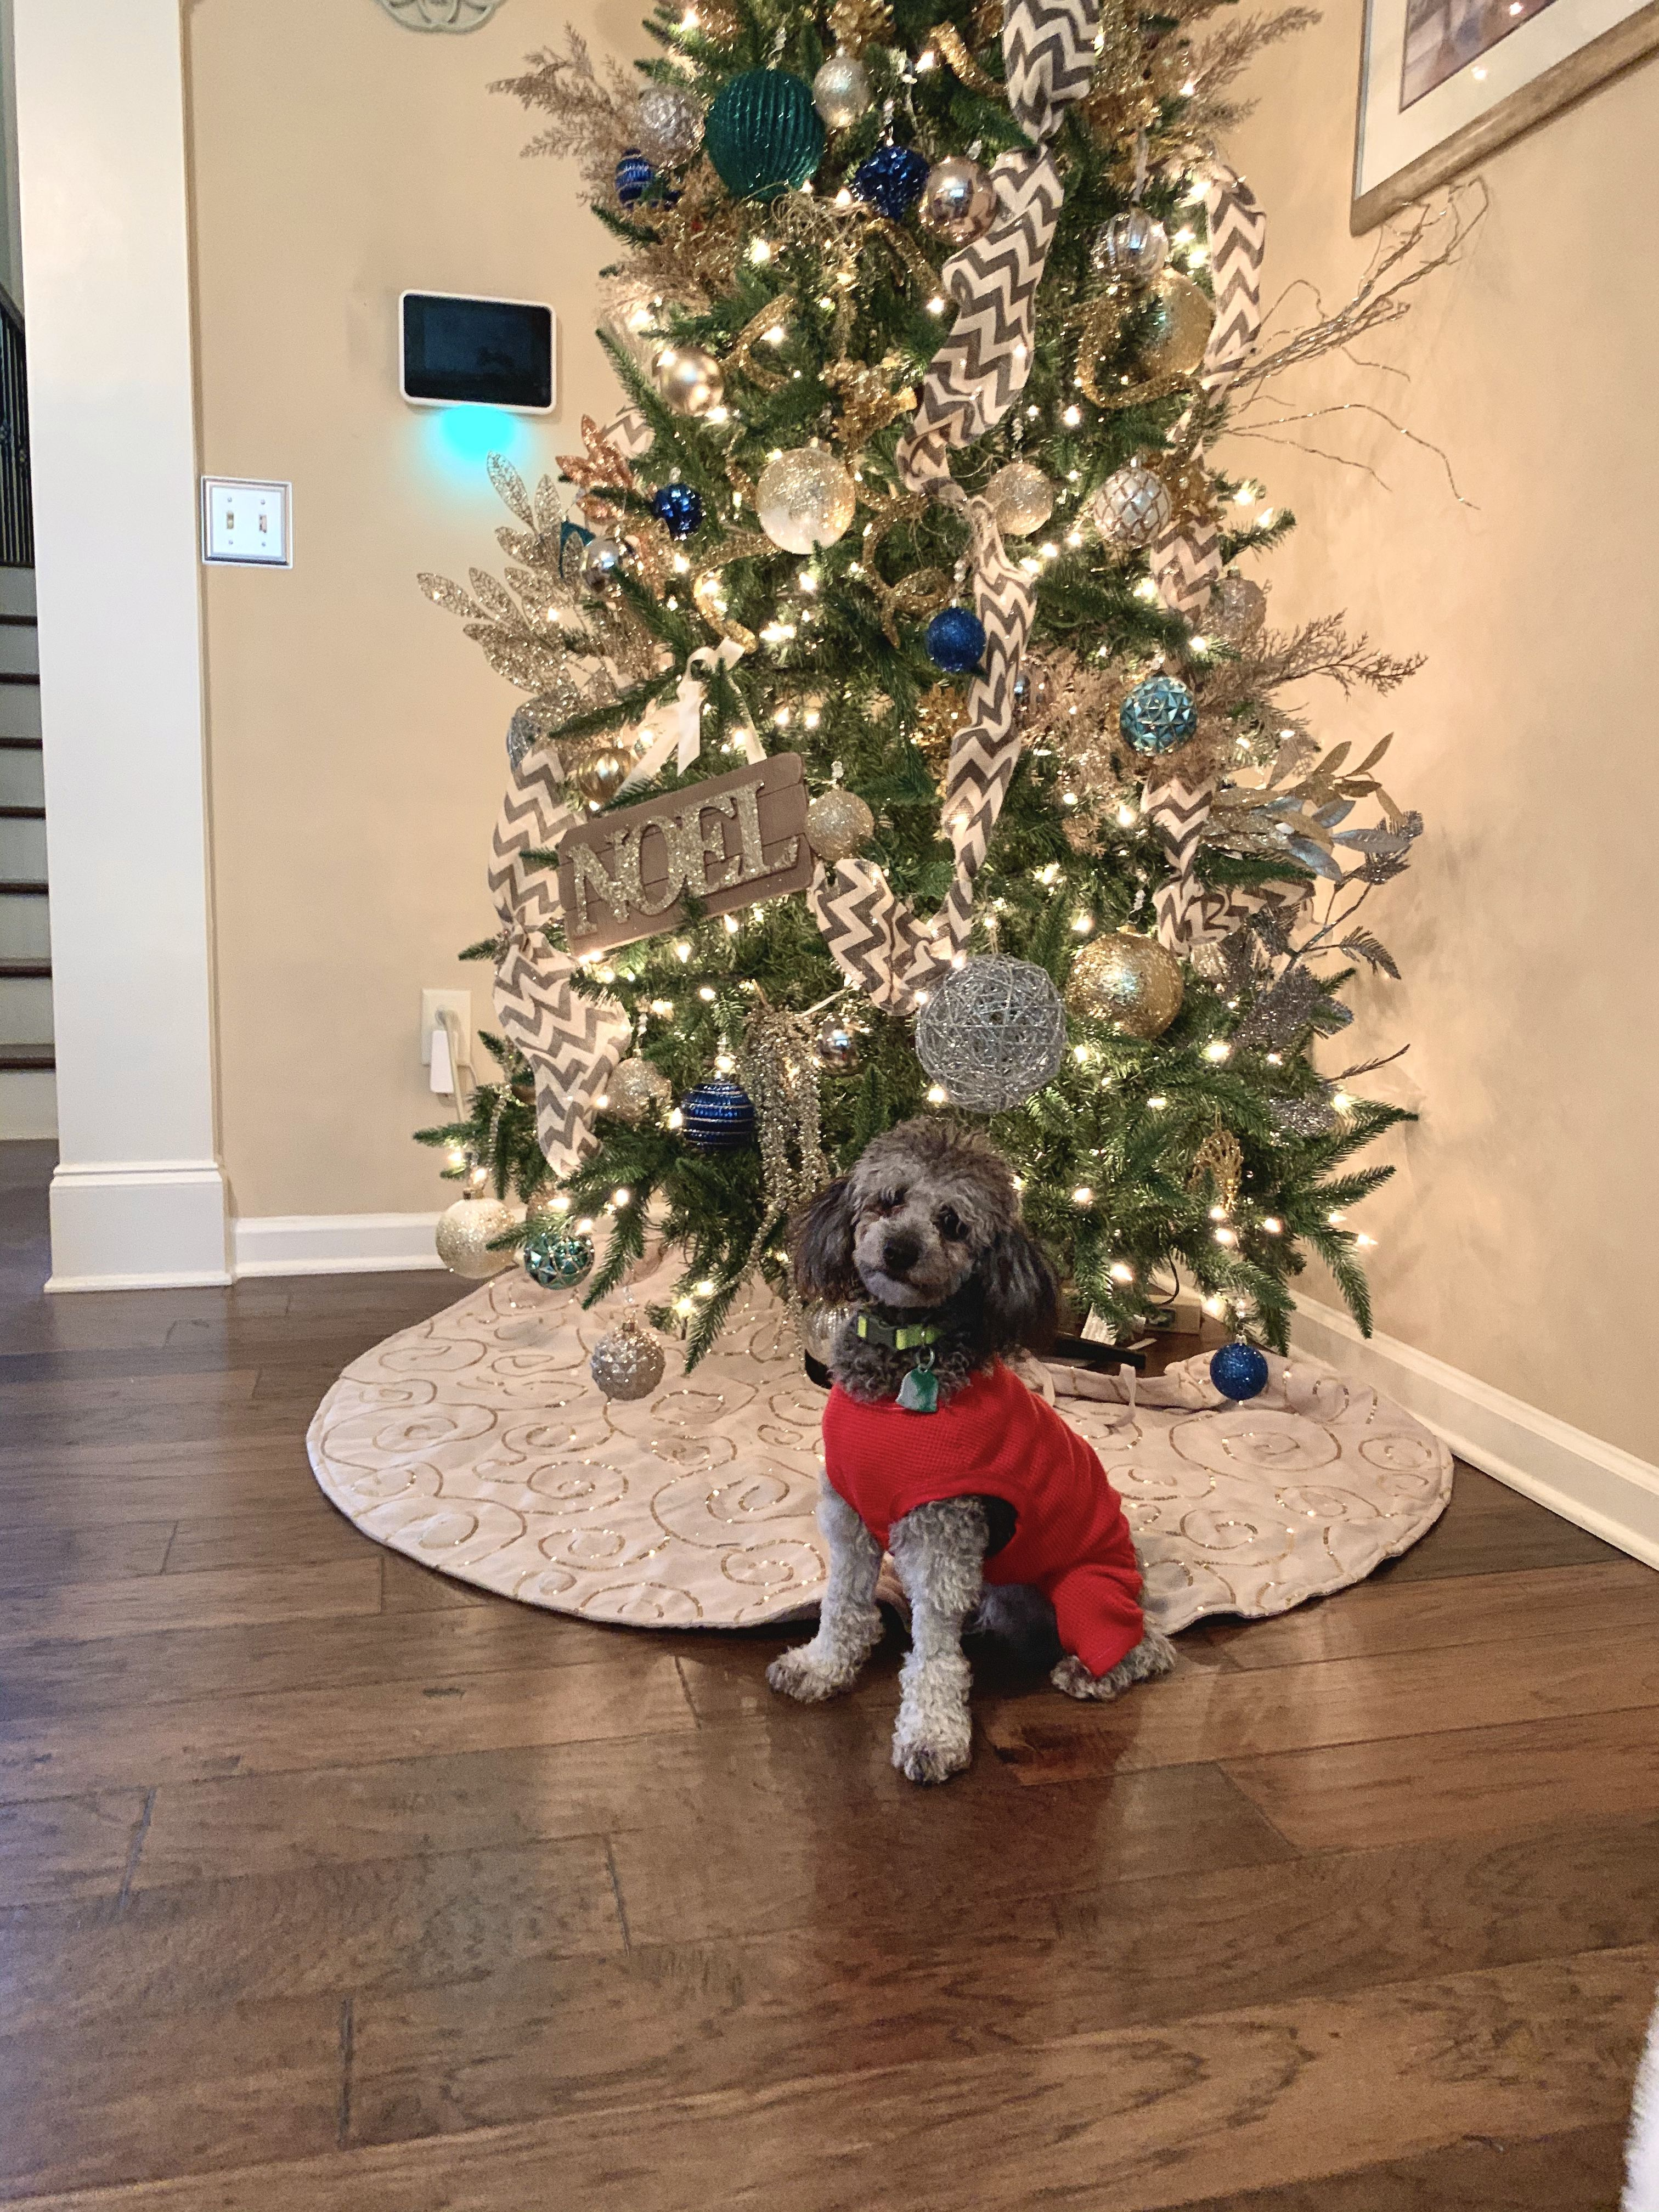 Pin by Savannah Harris on Poodle in 2020 Holiday decor